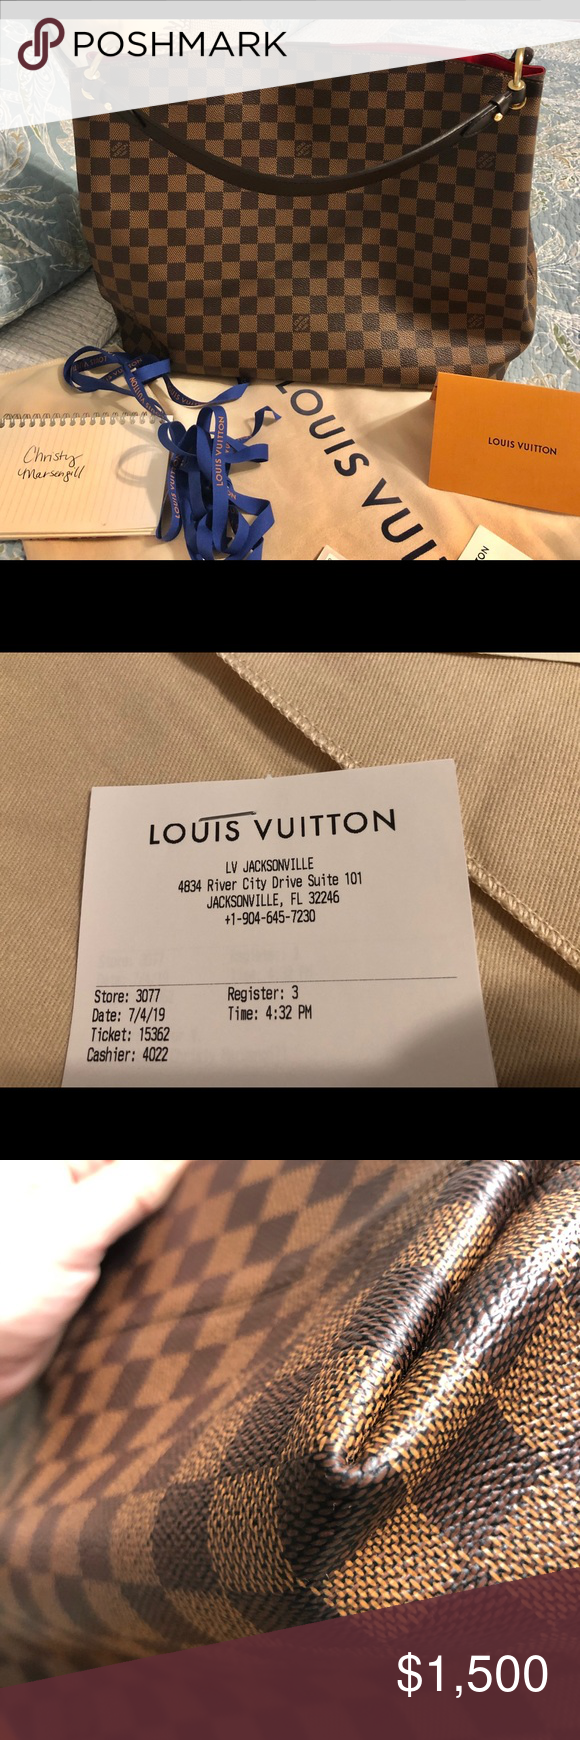 Louis Vuitton Graceful Mm In Damier Ebene Lv Graceful Mm De